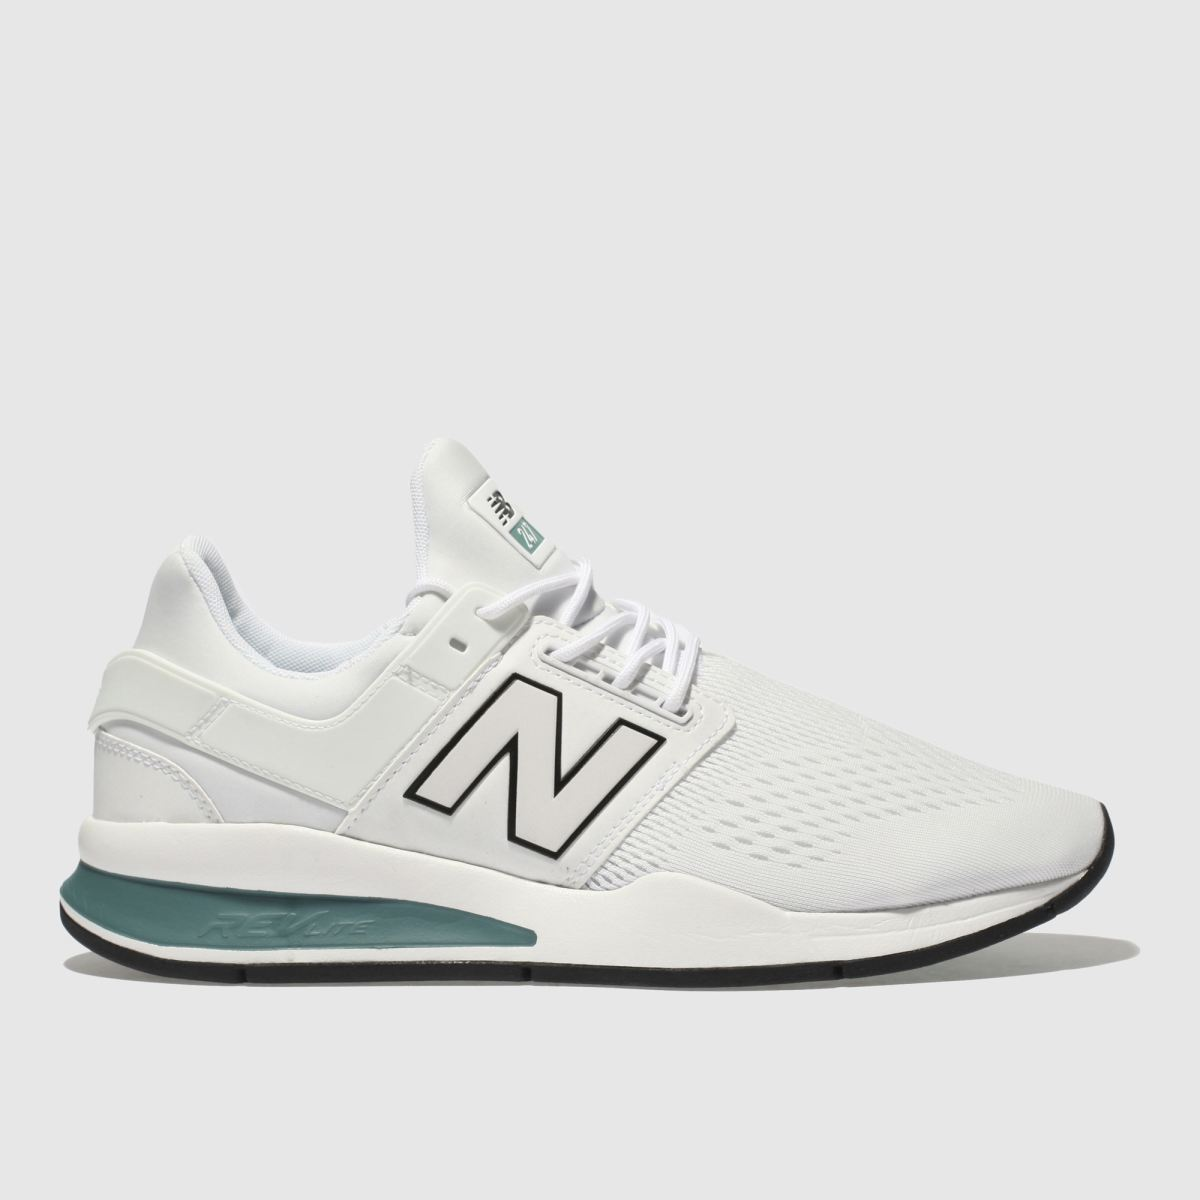 New Balance White & Green 247 V2 Trainers